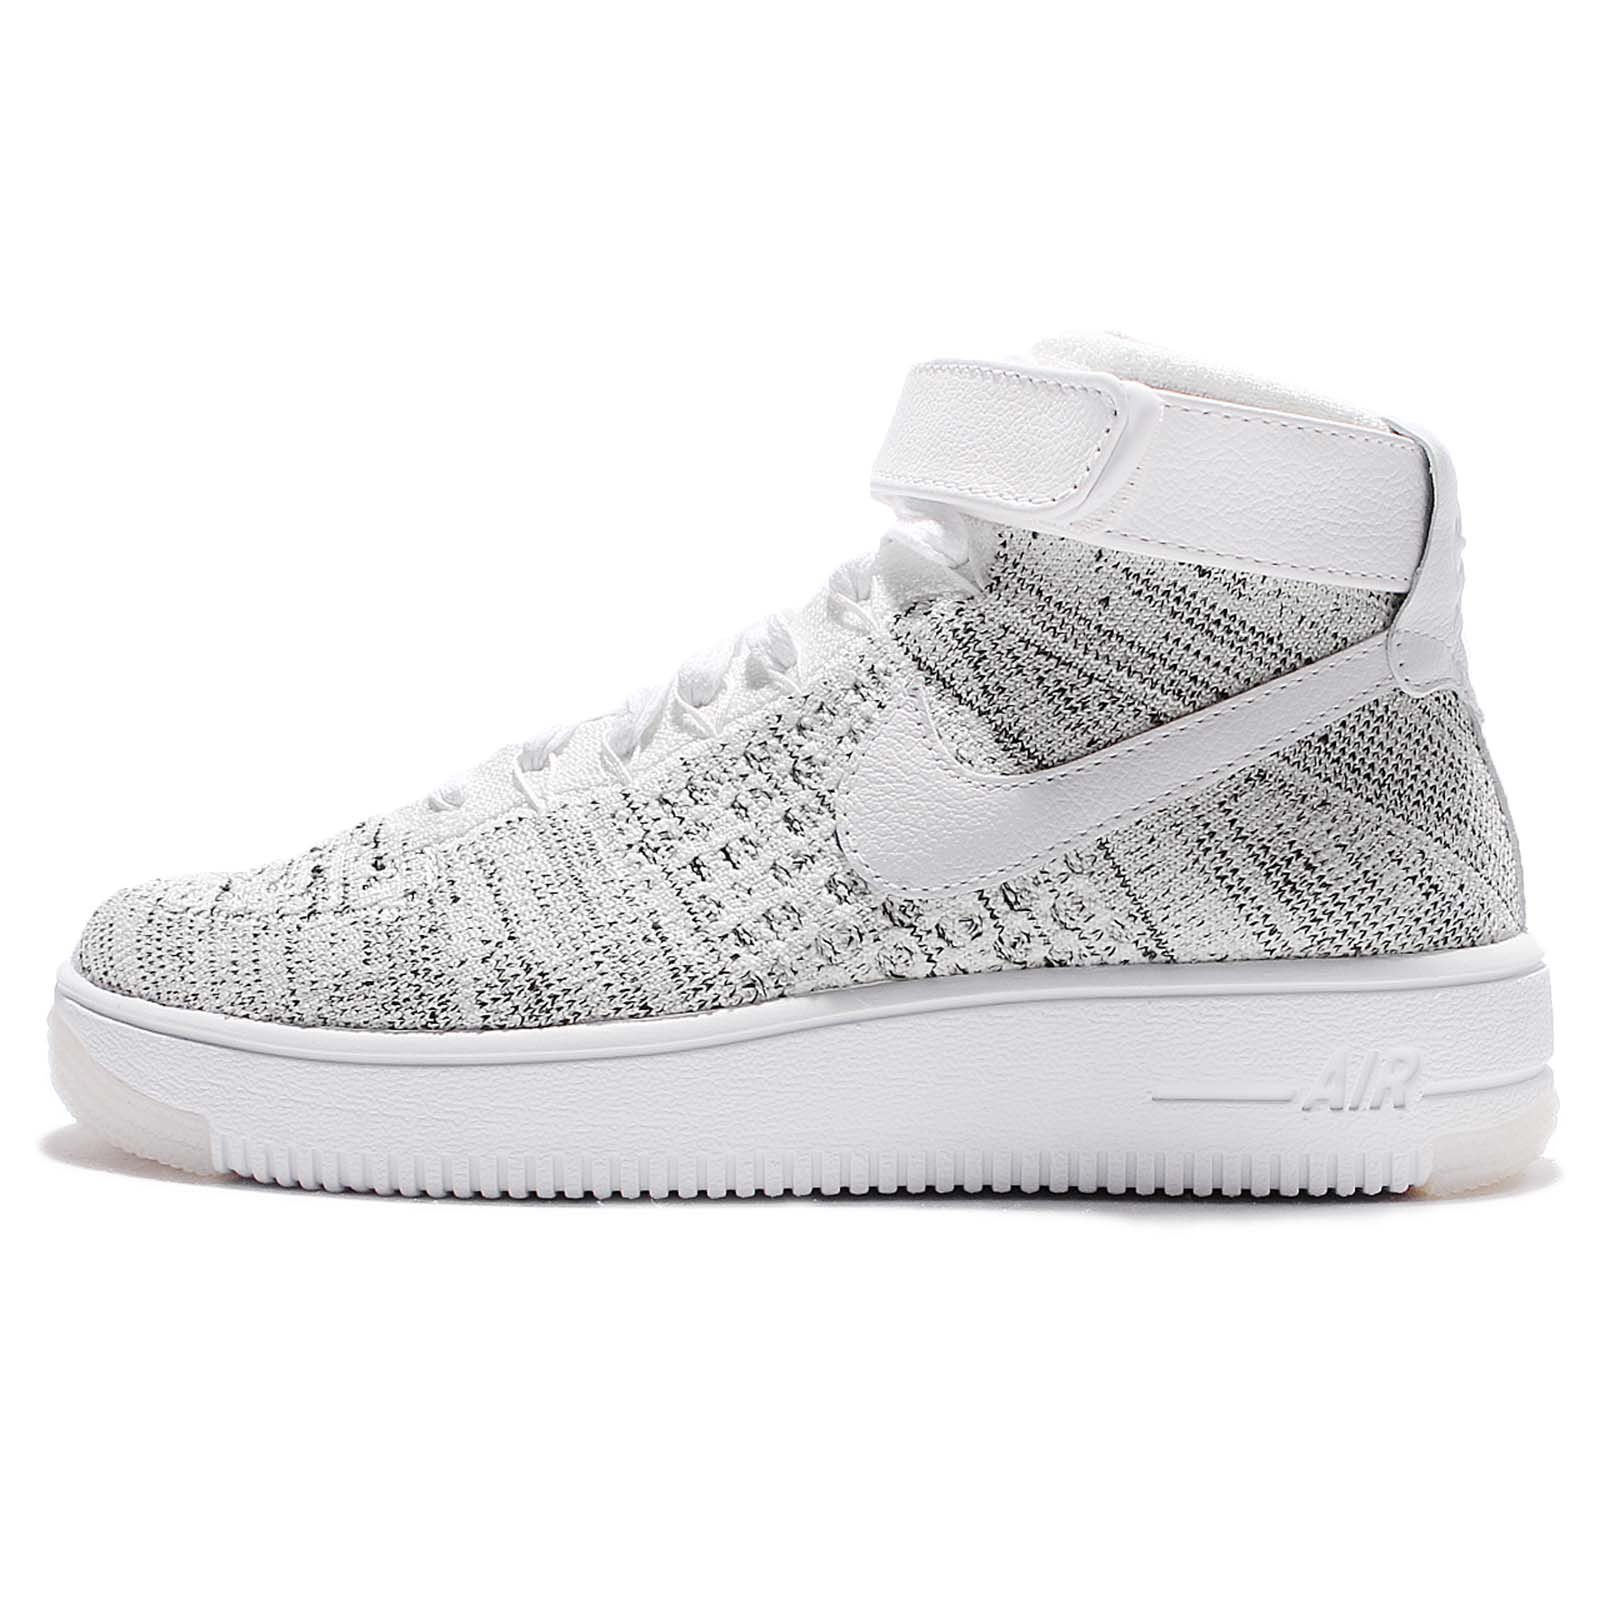 Nike Air Force 1 Ultra Flyknit Mid Women's Running Training Shoes Size 7.5